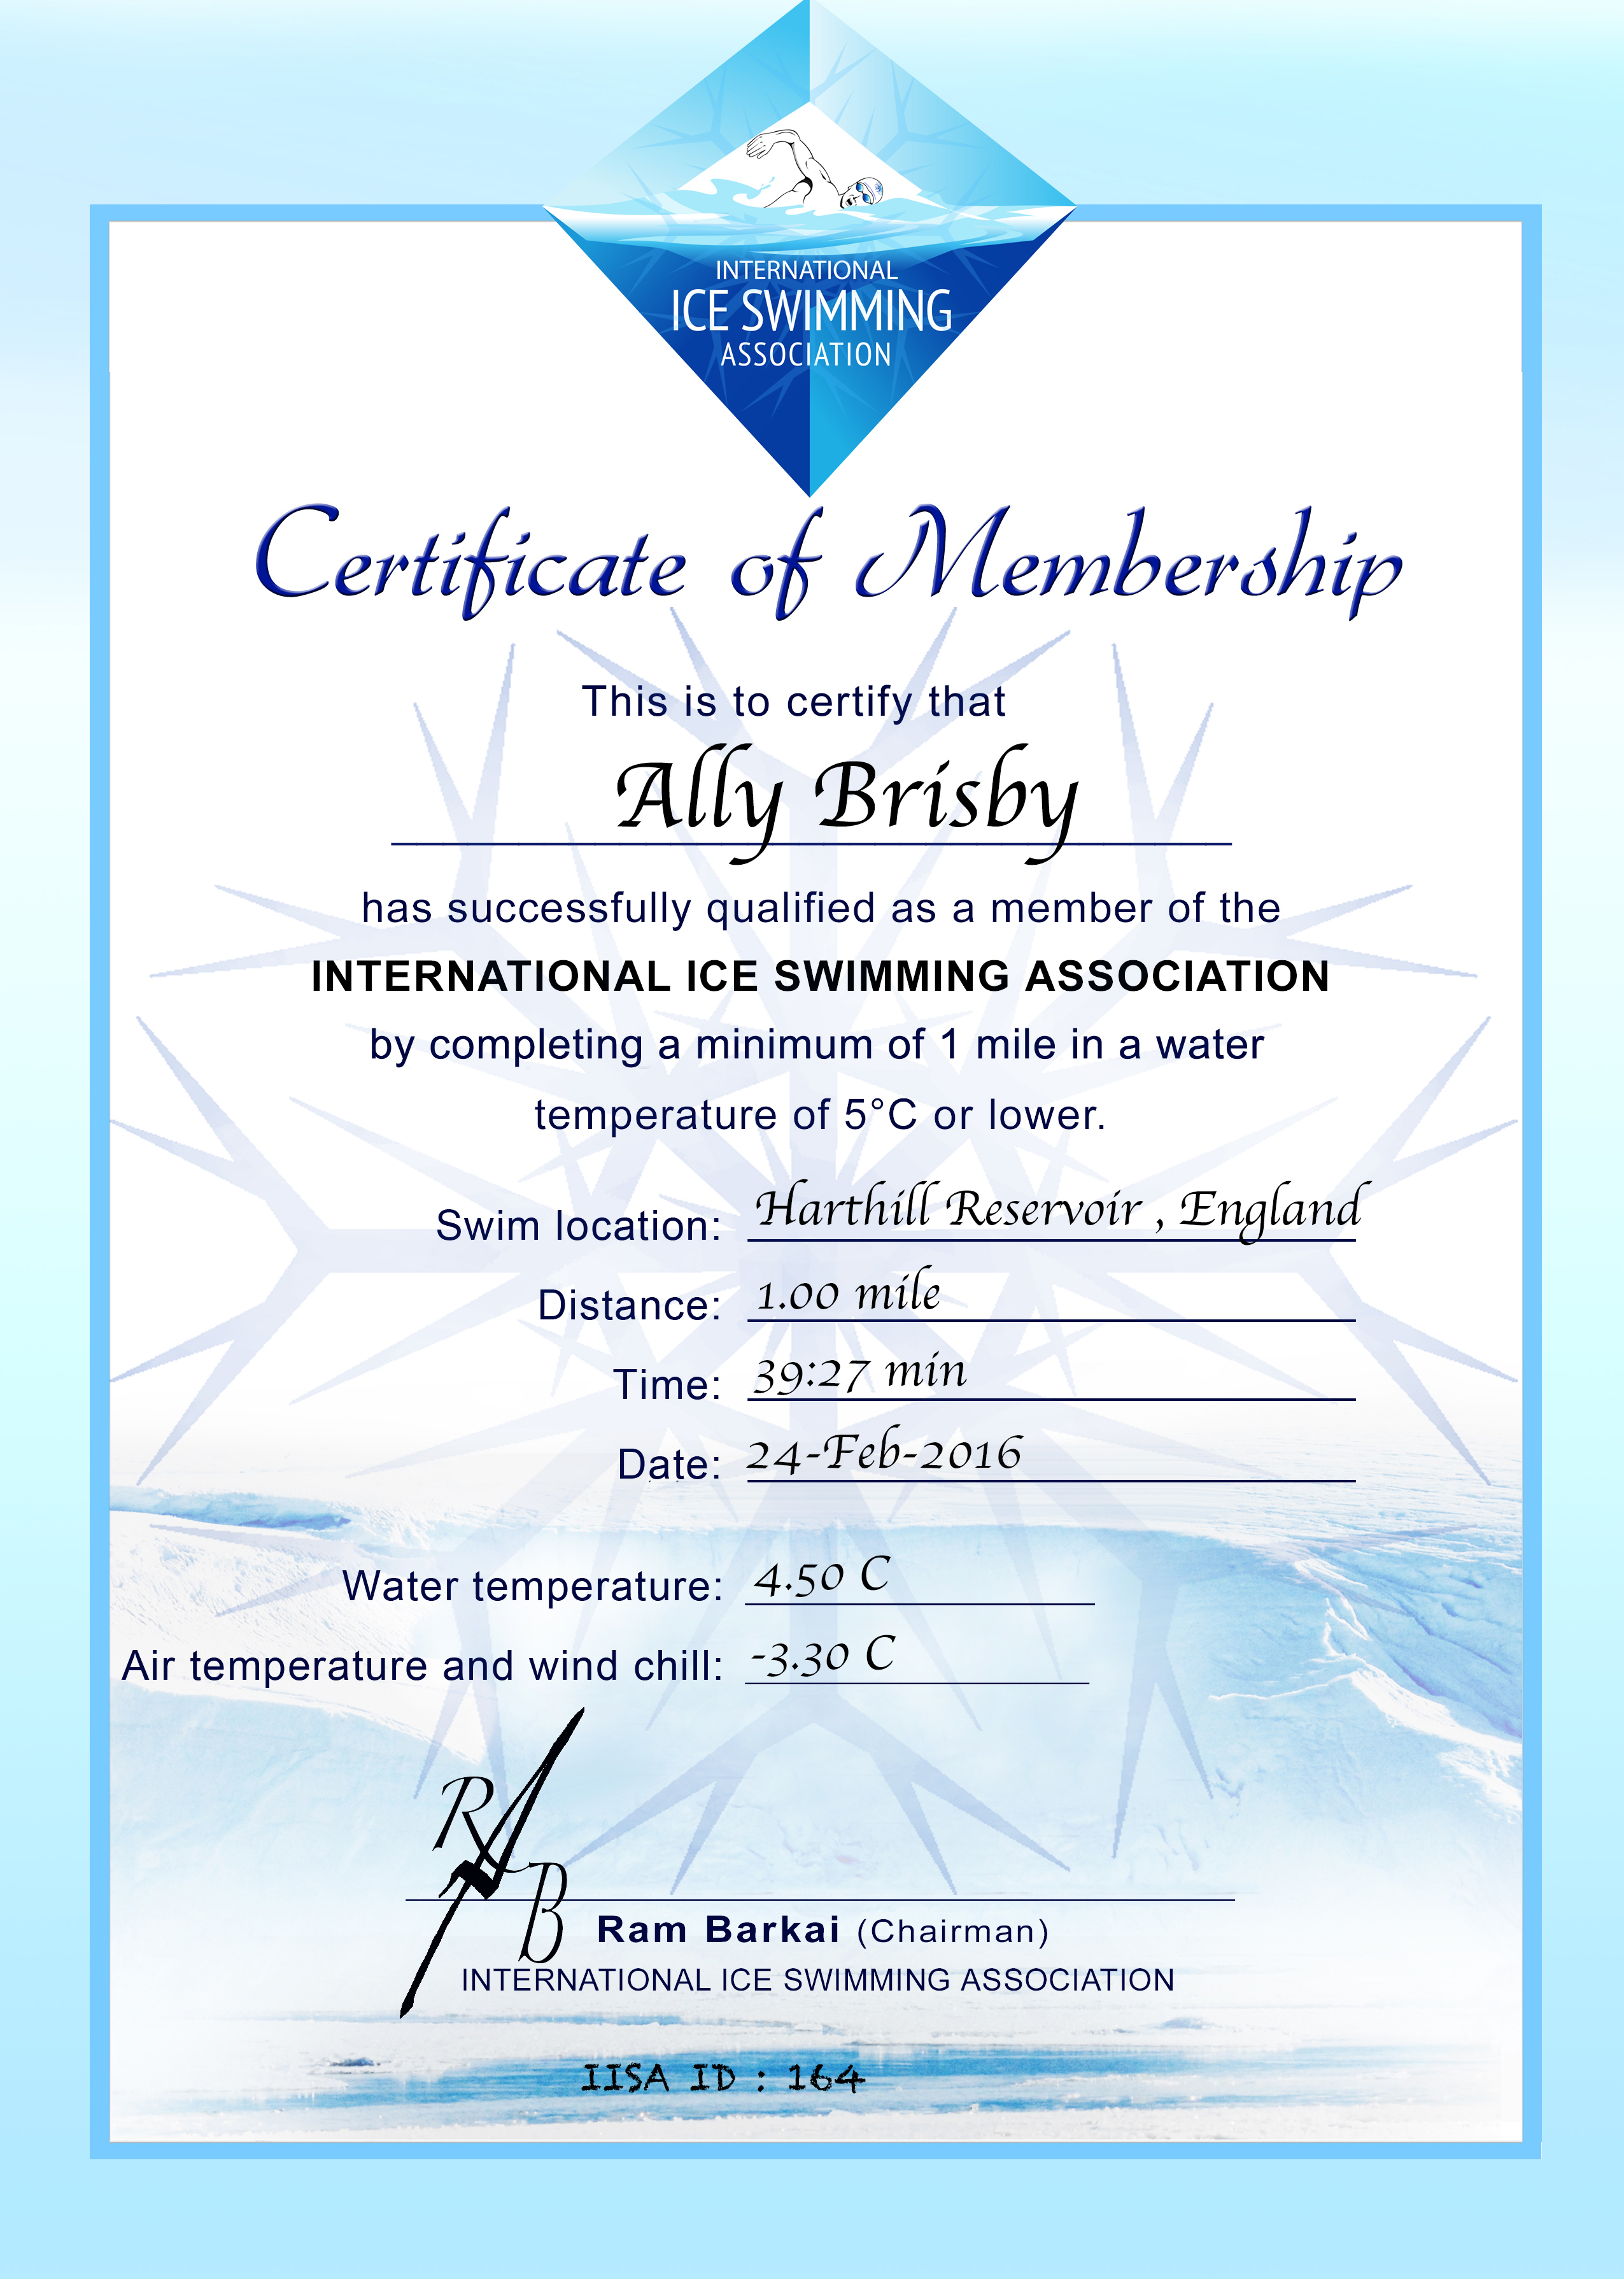 Ice Mile Certificate - Ally Brisby